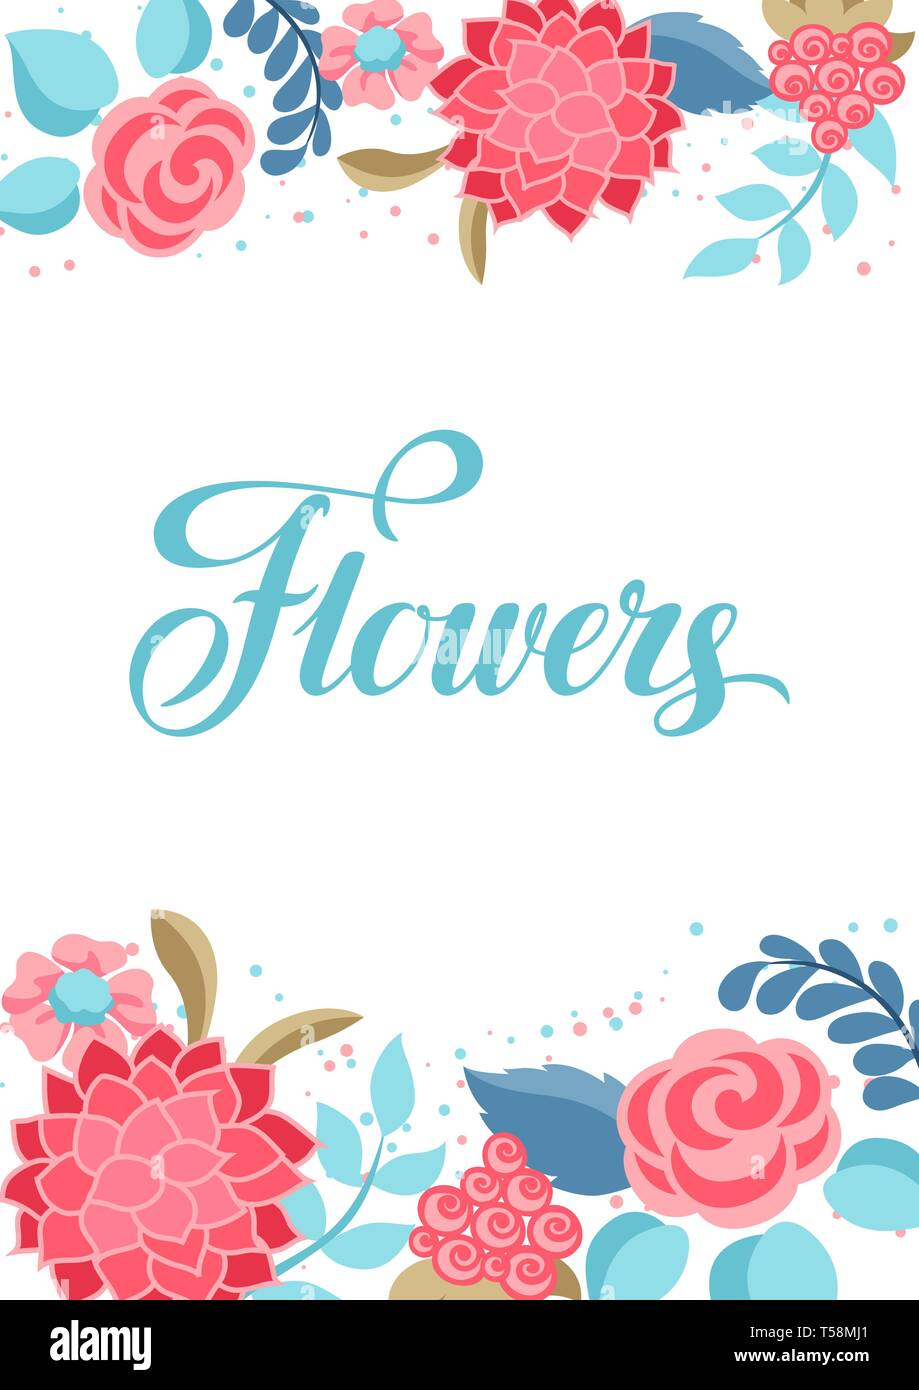 Background with gentle flowers. - Stock Vector